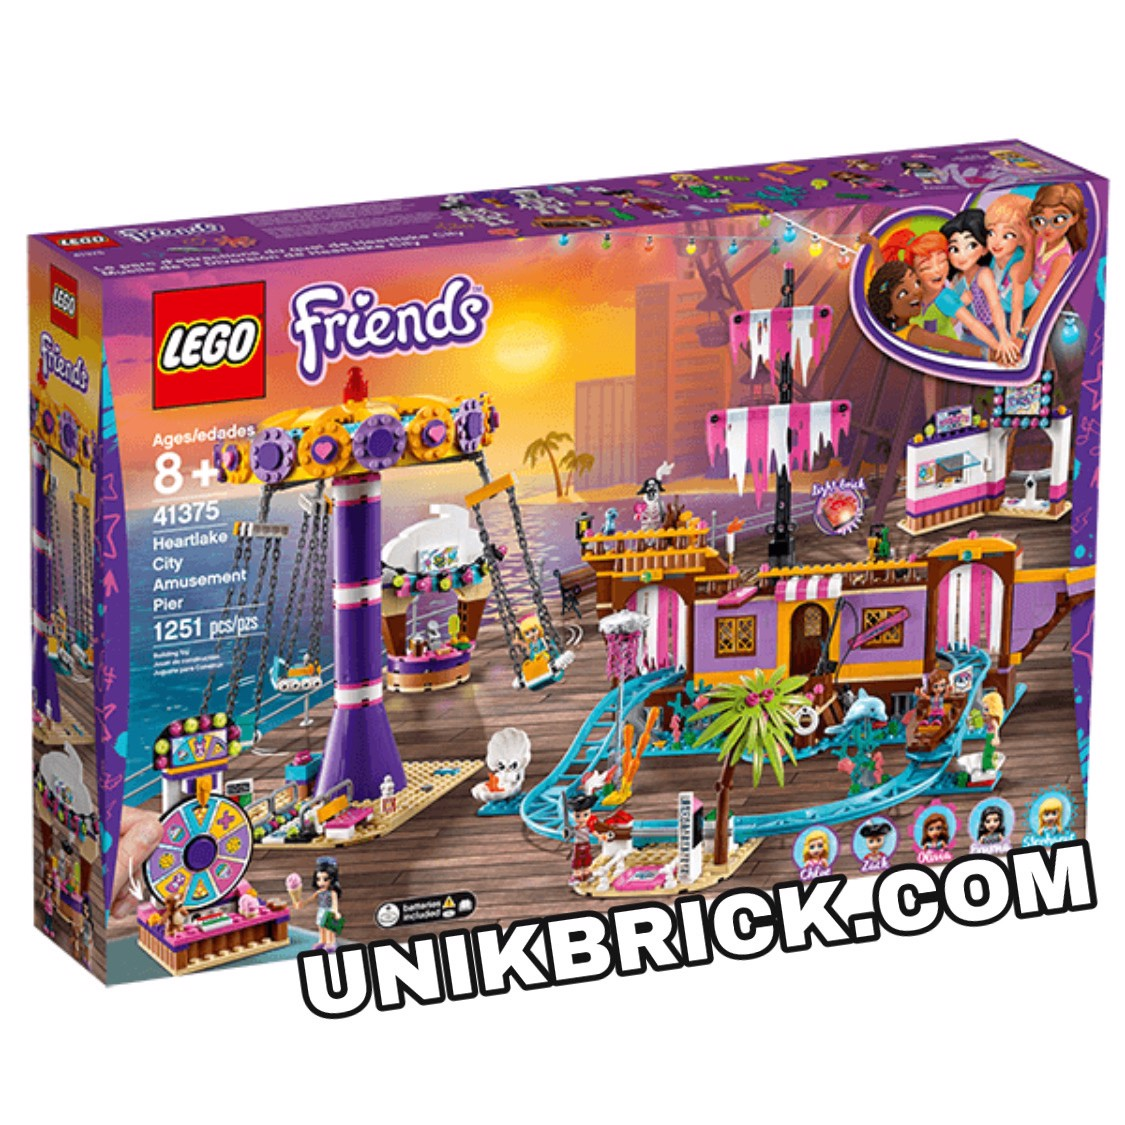 [HÀNG ĐẶT/ ORDER] LEGO Friends 41375 Heartlake City Amusement Pier